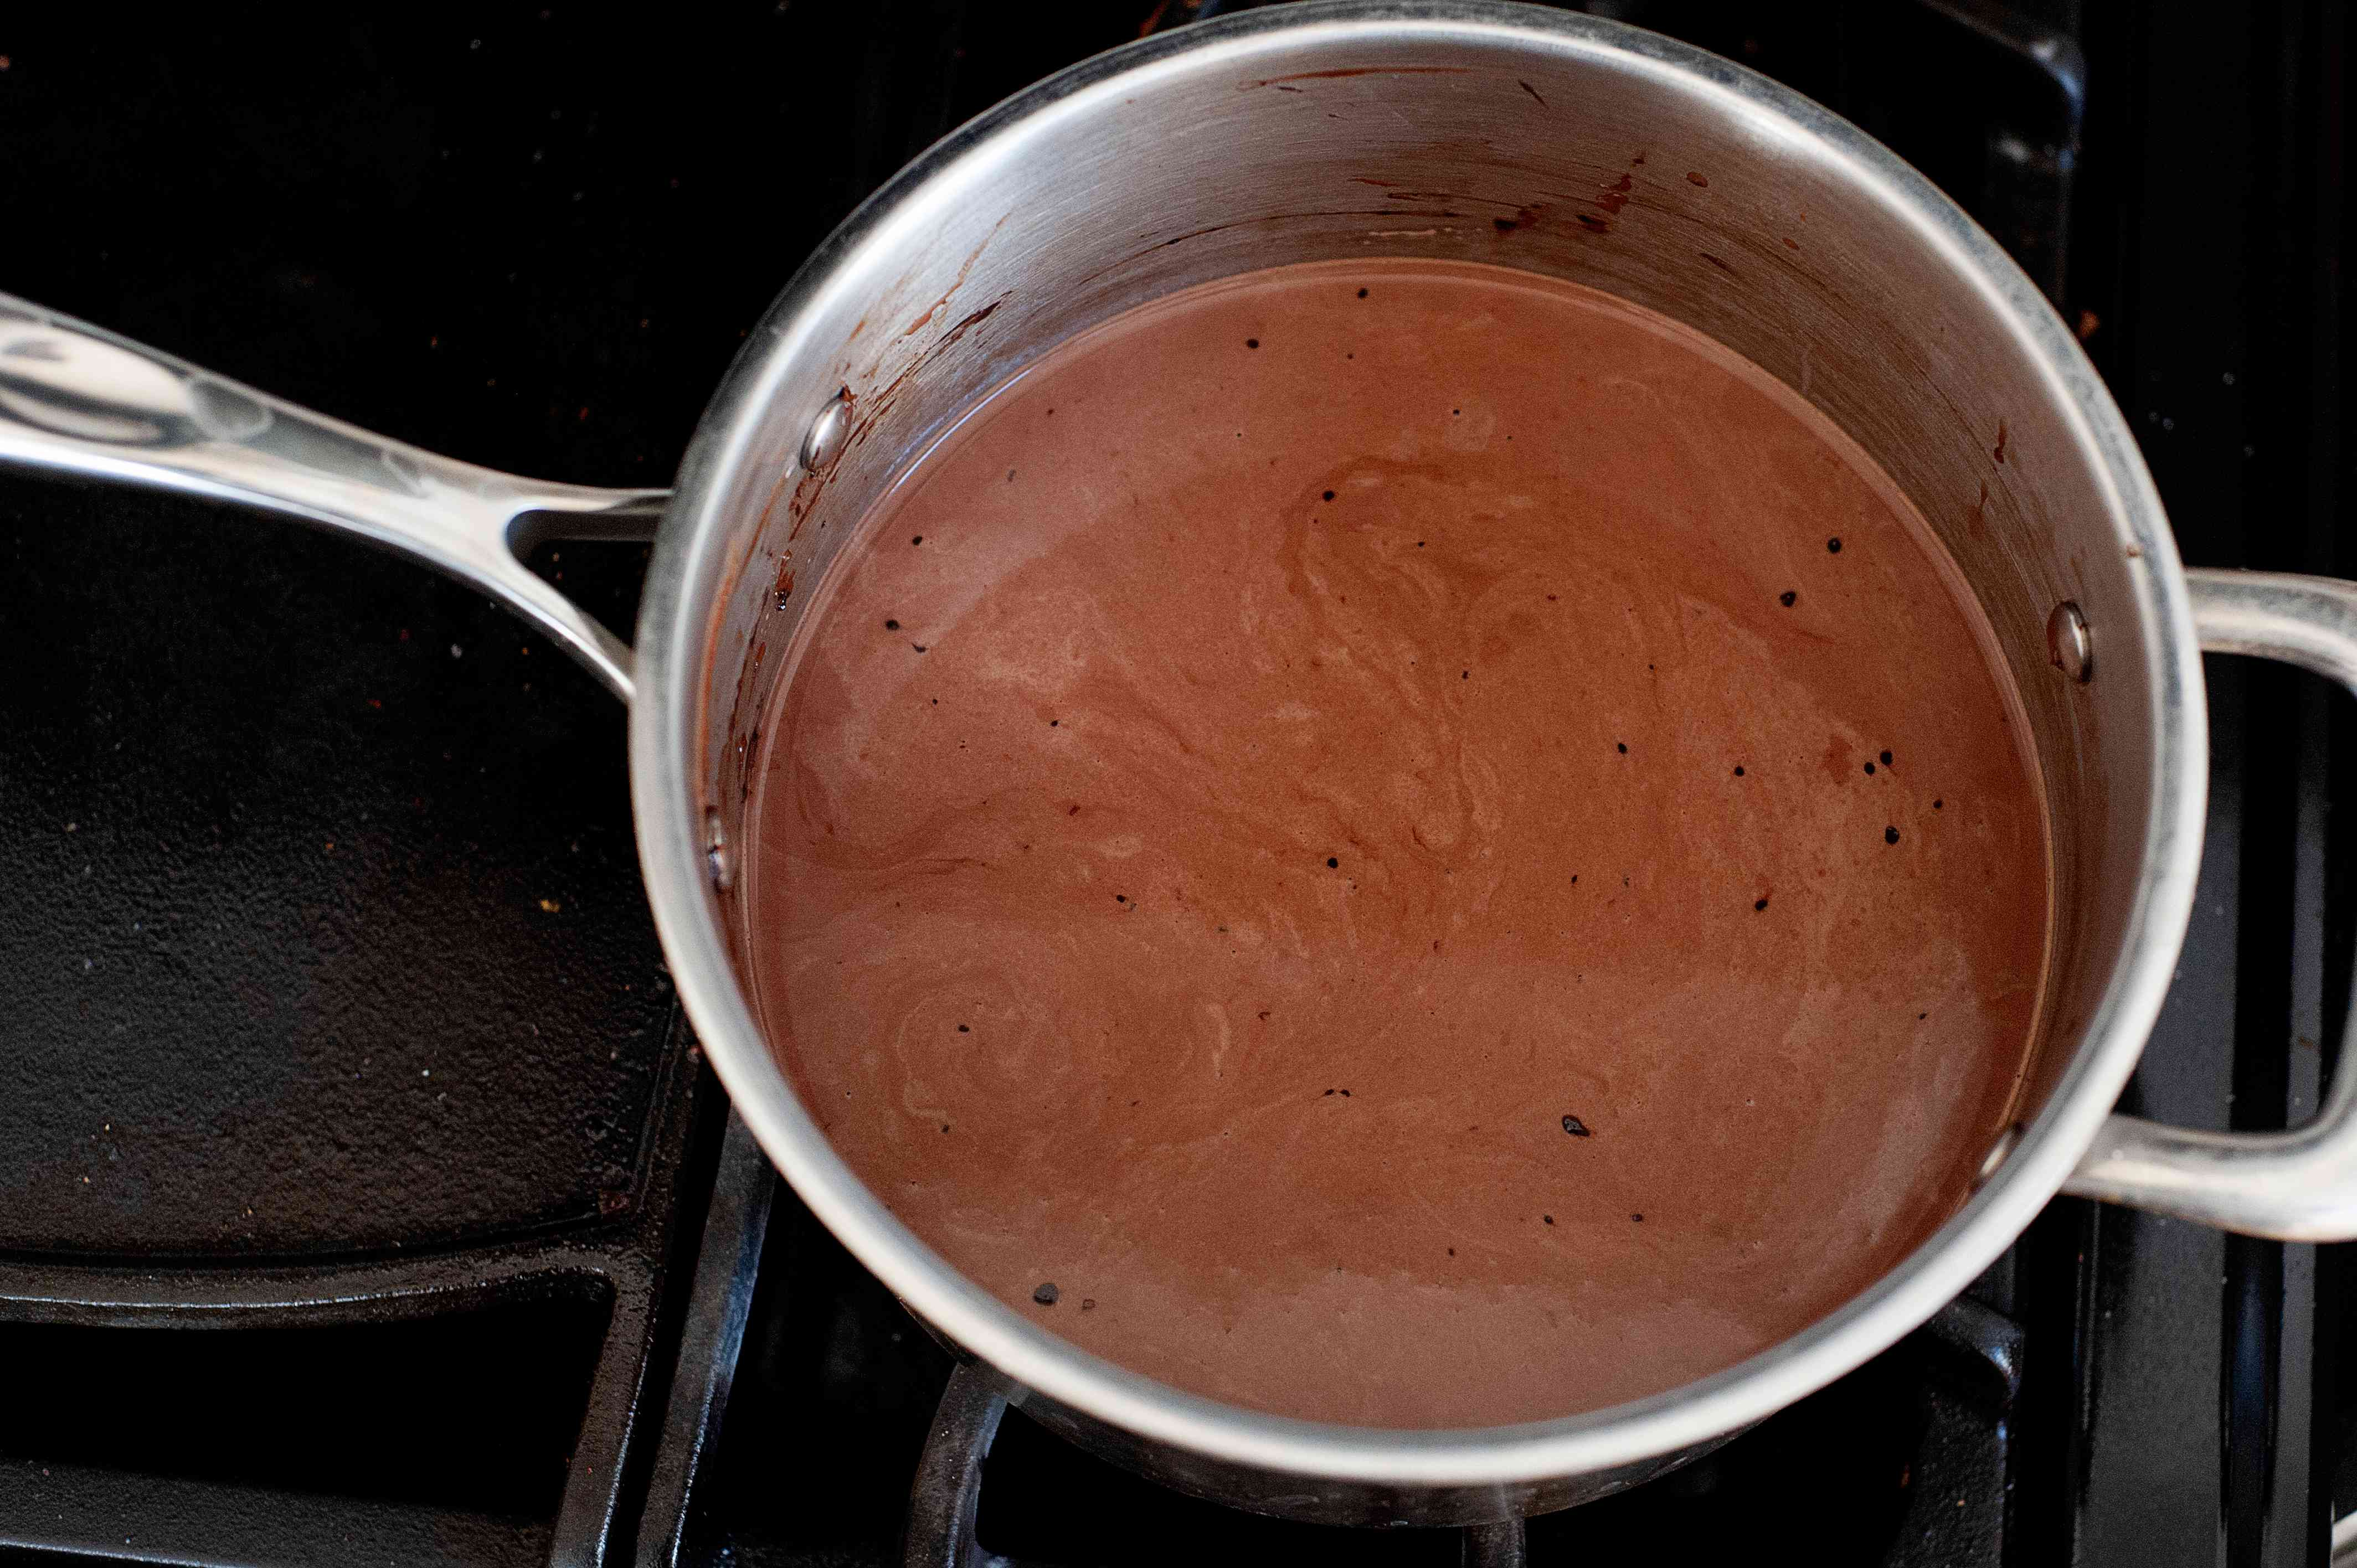 Melted chocolate in a saucepan to make a chocolate ice cream recipe.